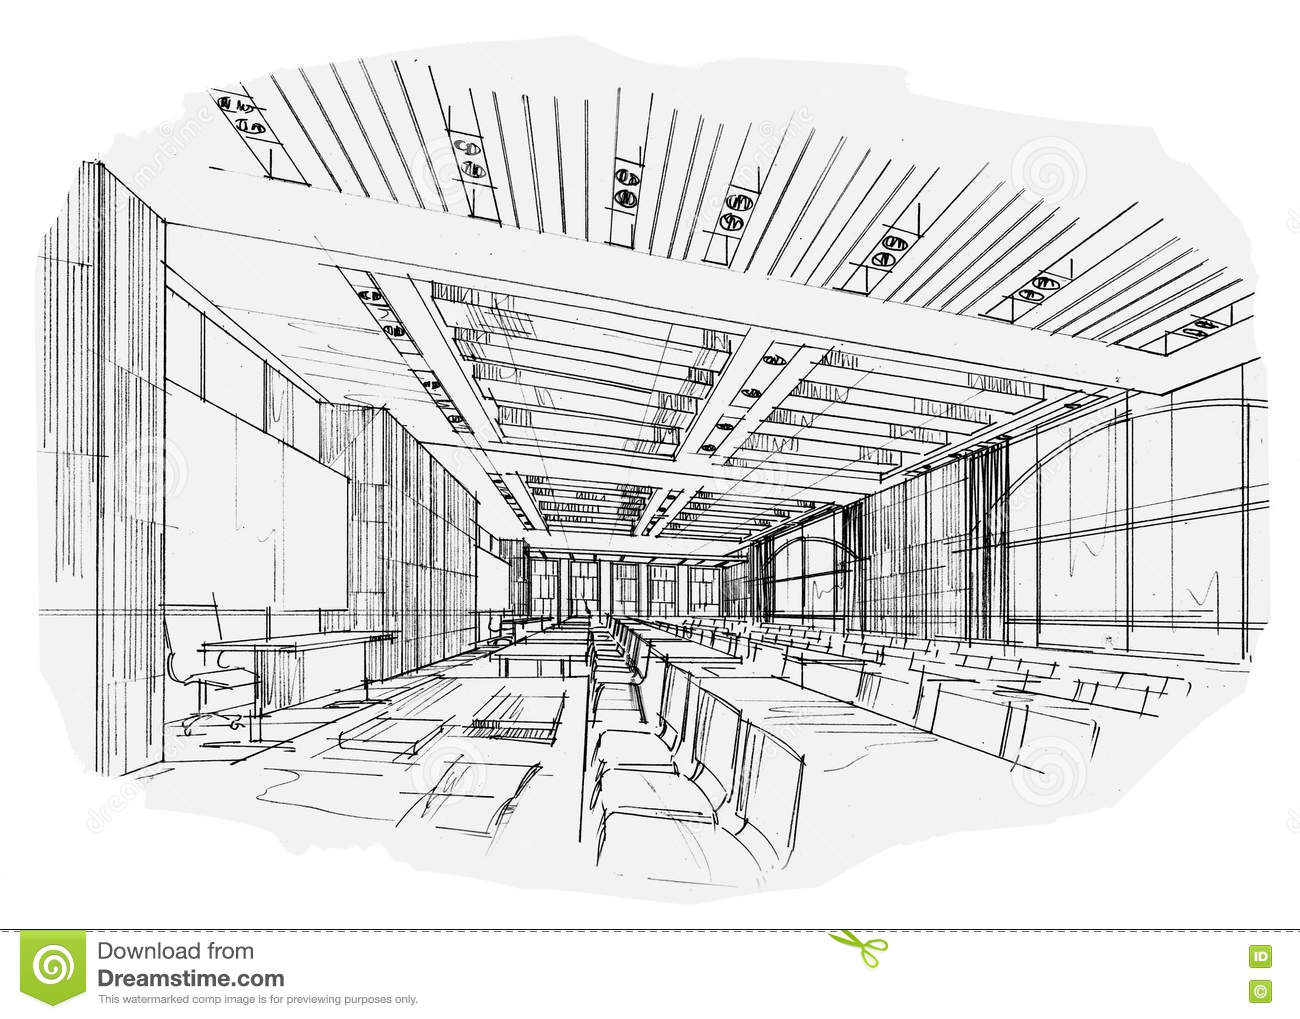 Classroom Design Sketch : Sketch interior perspective classroom black and white